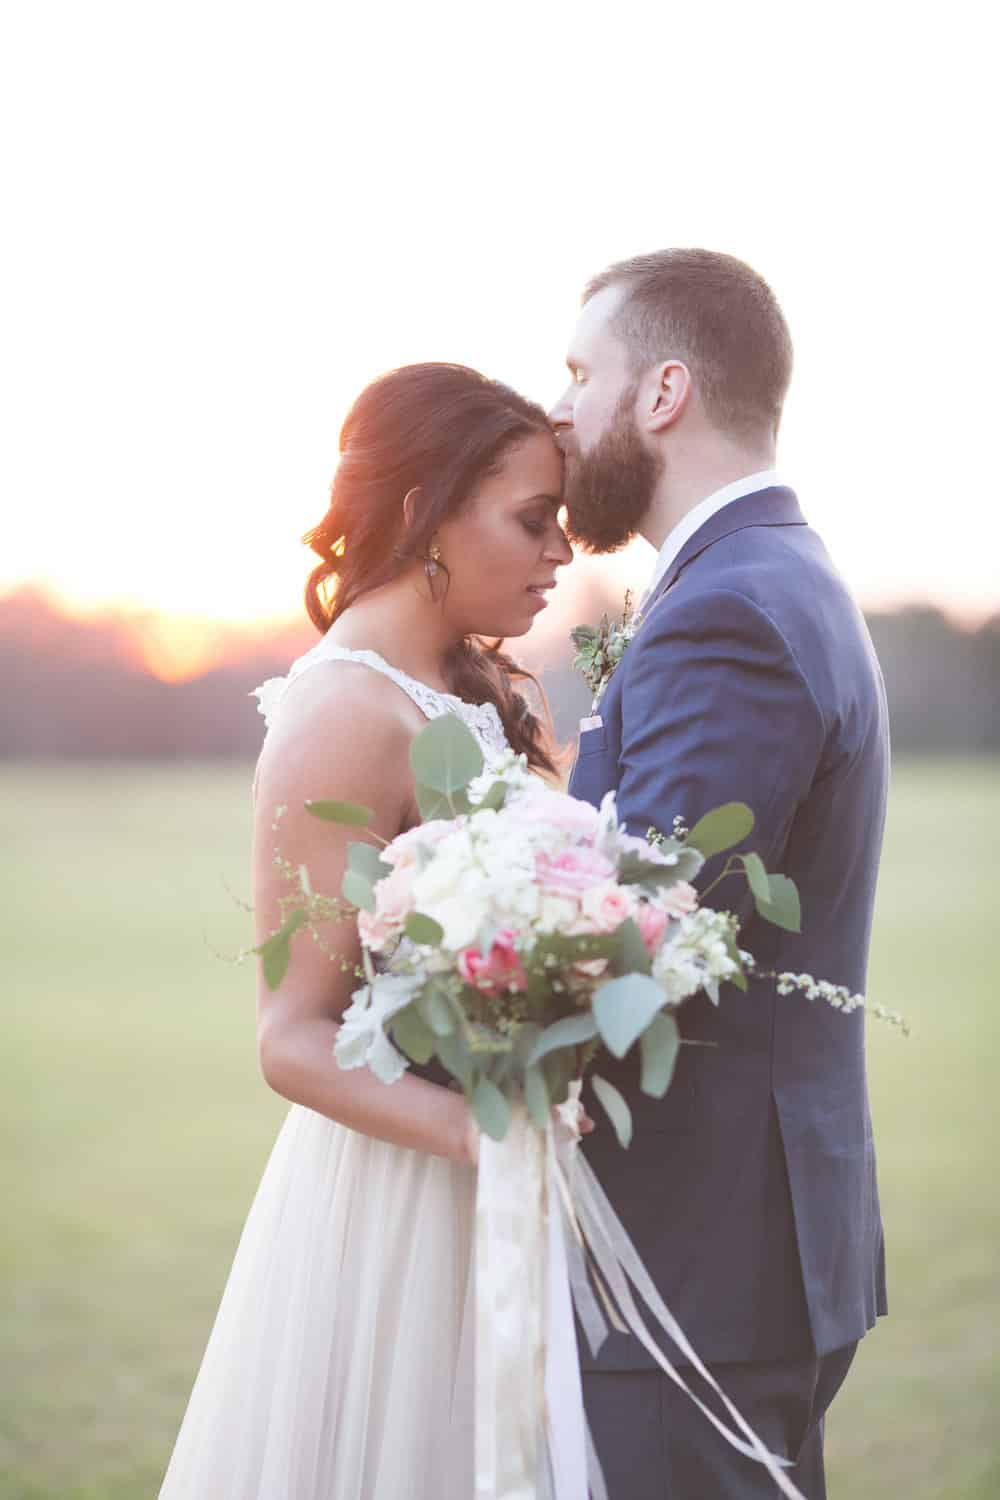 View More: http://simplycouturephoto.pass.us/2017styledshoot